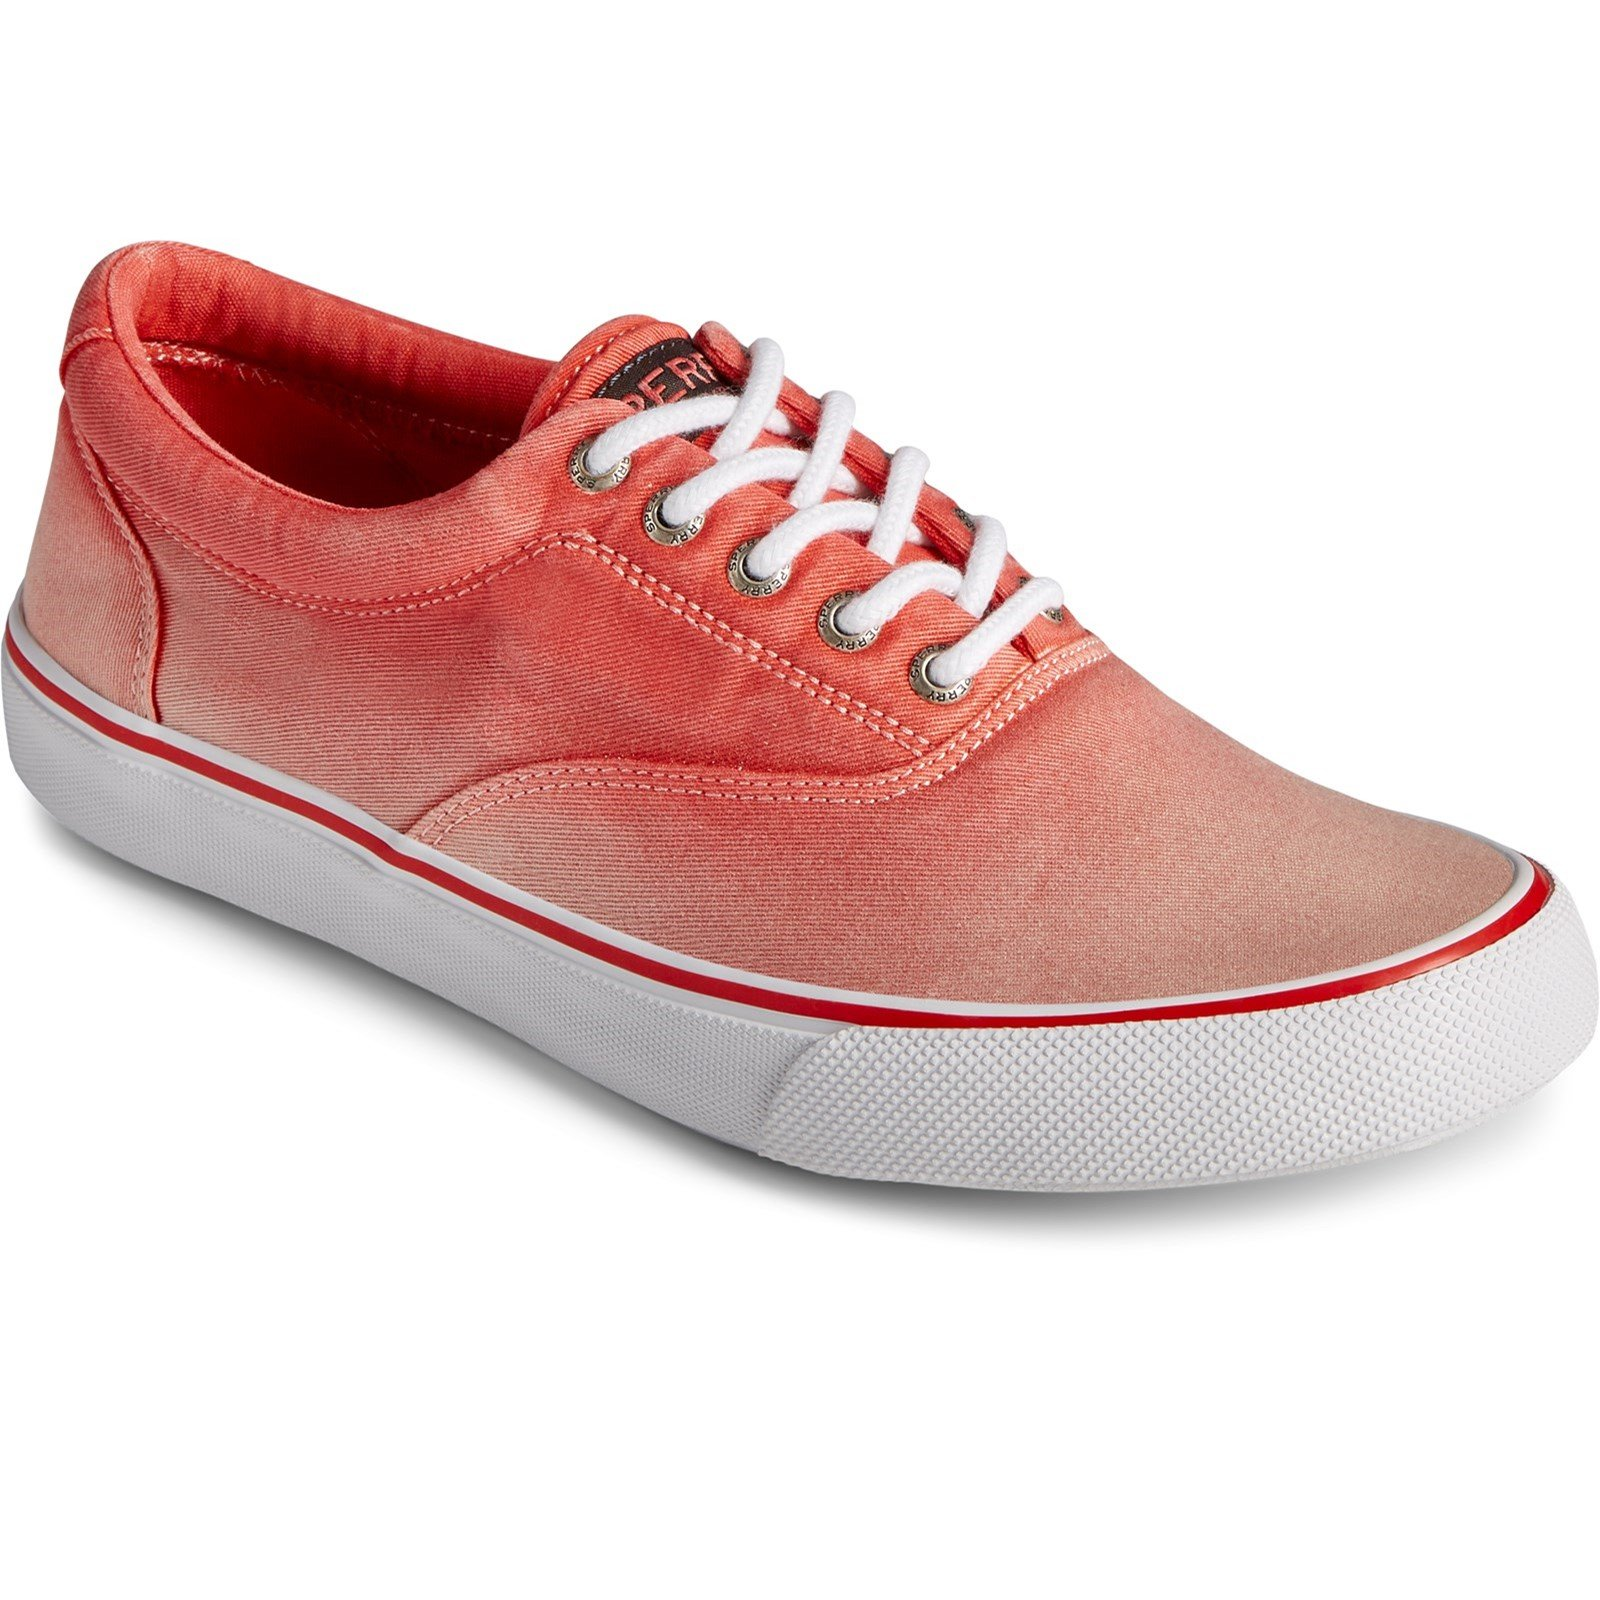 Sperry Men's Striper II CVO Ombre Lace Trainer Various Colours 32932 - Red 13